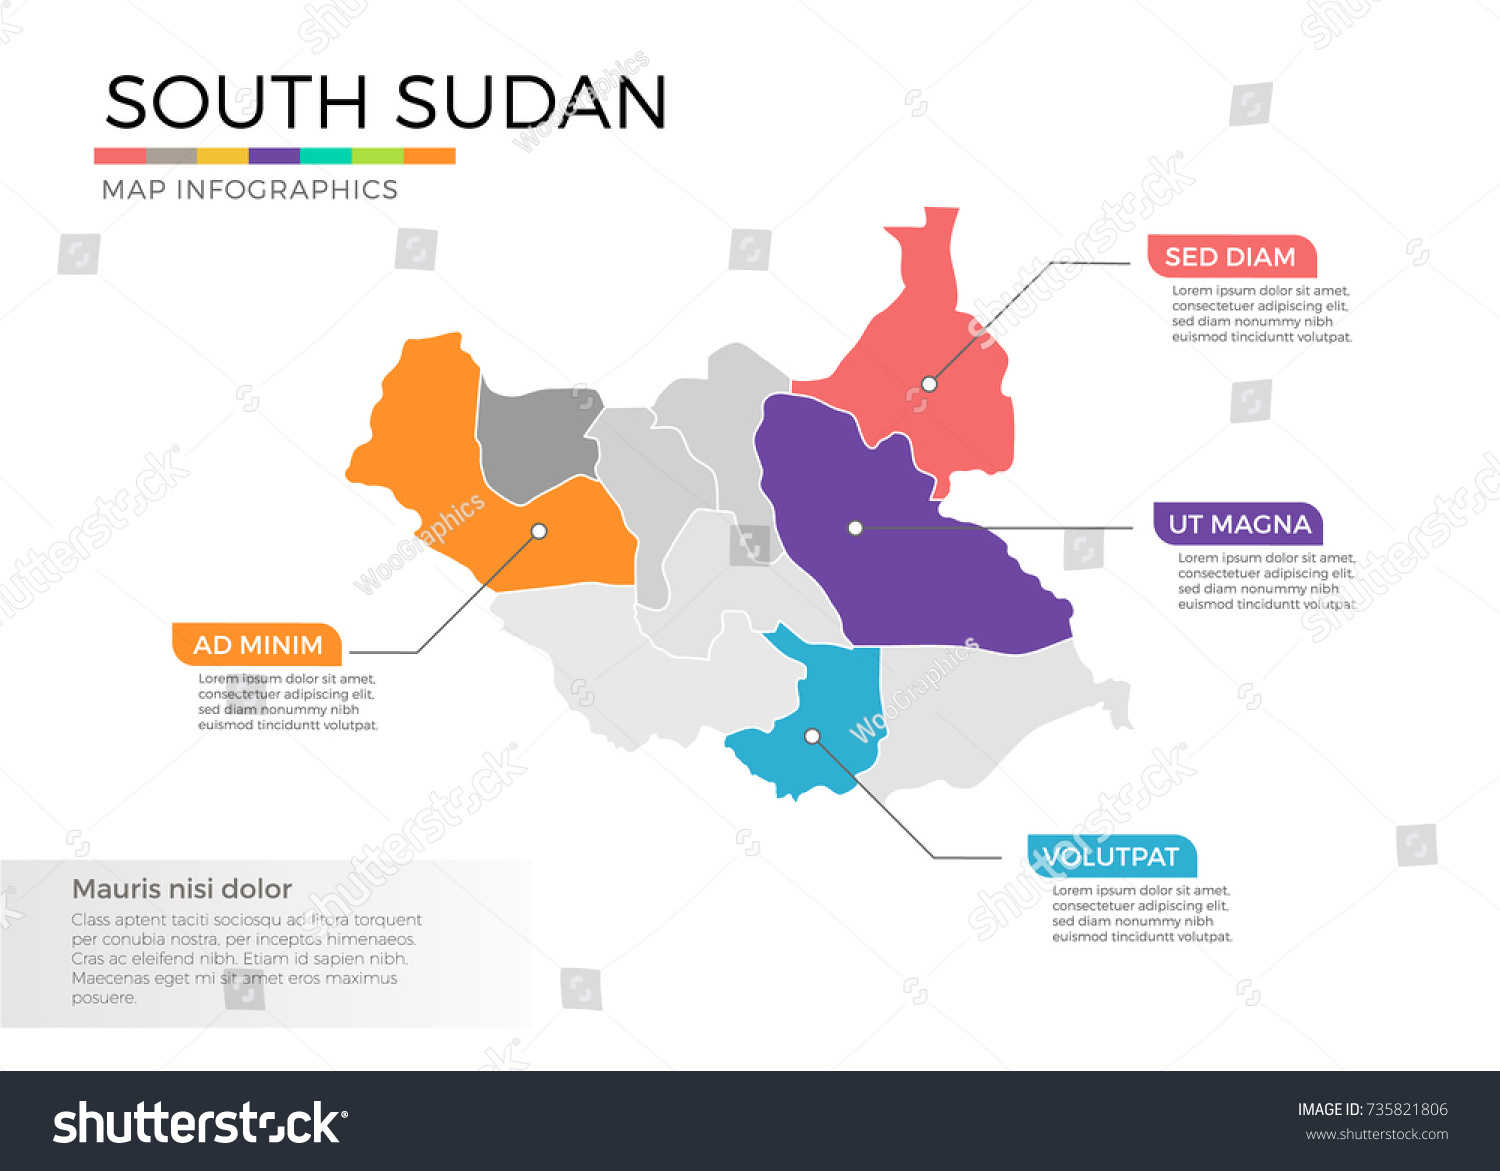 South sudan map infographics vector template stock vector south sudan map infographics vector template with regions and pointer marks gumiabroncs Gallery